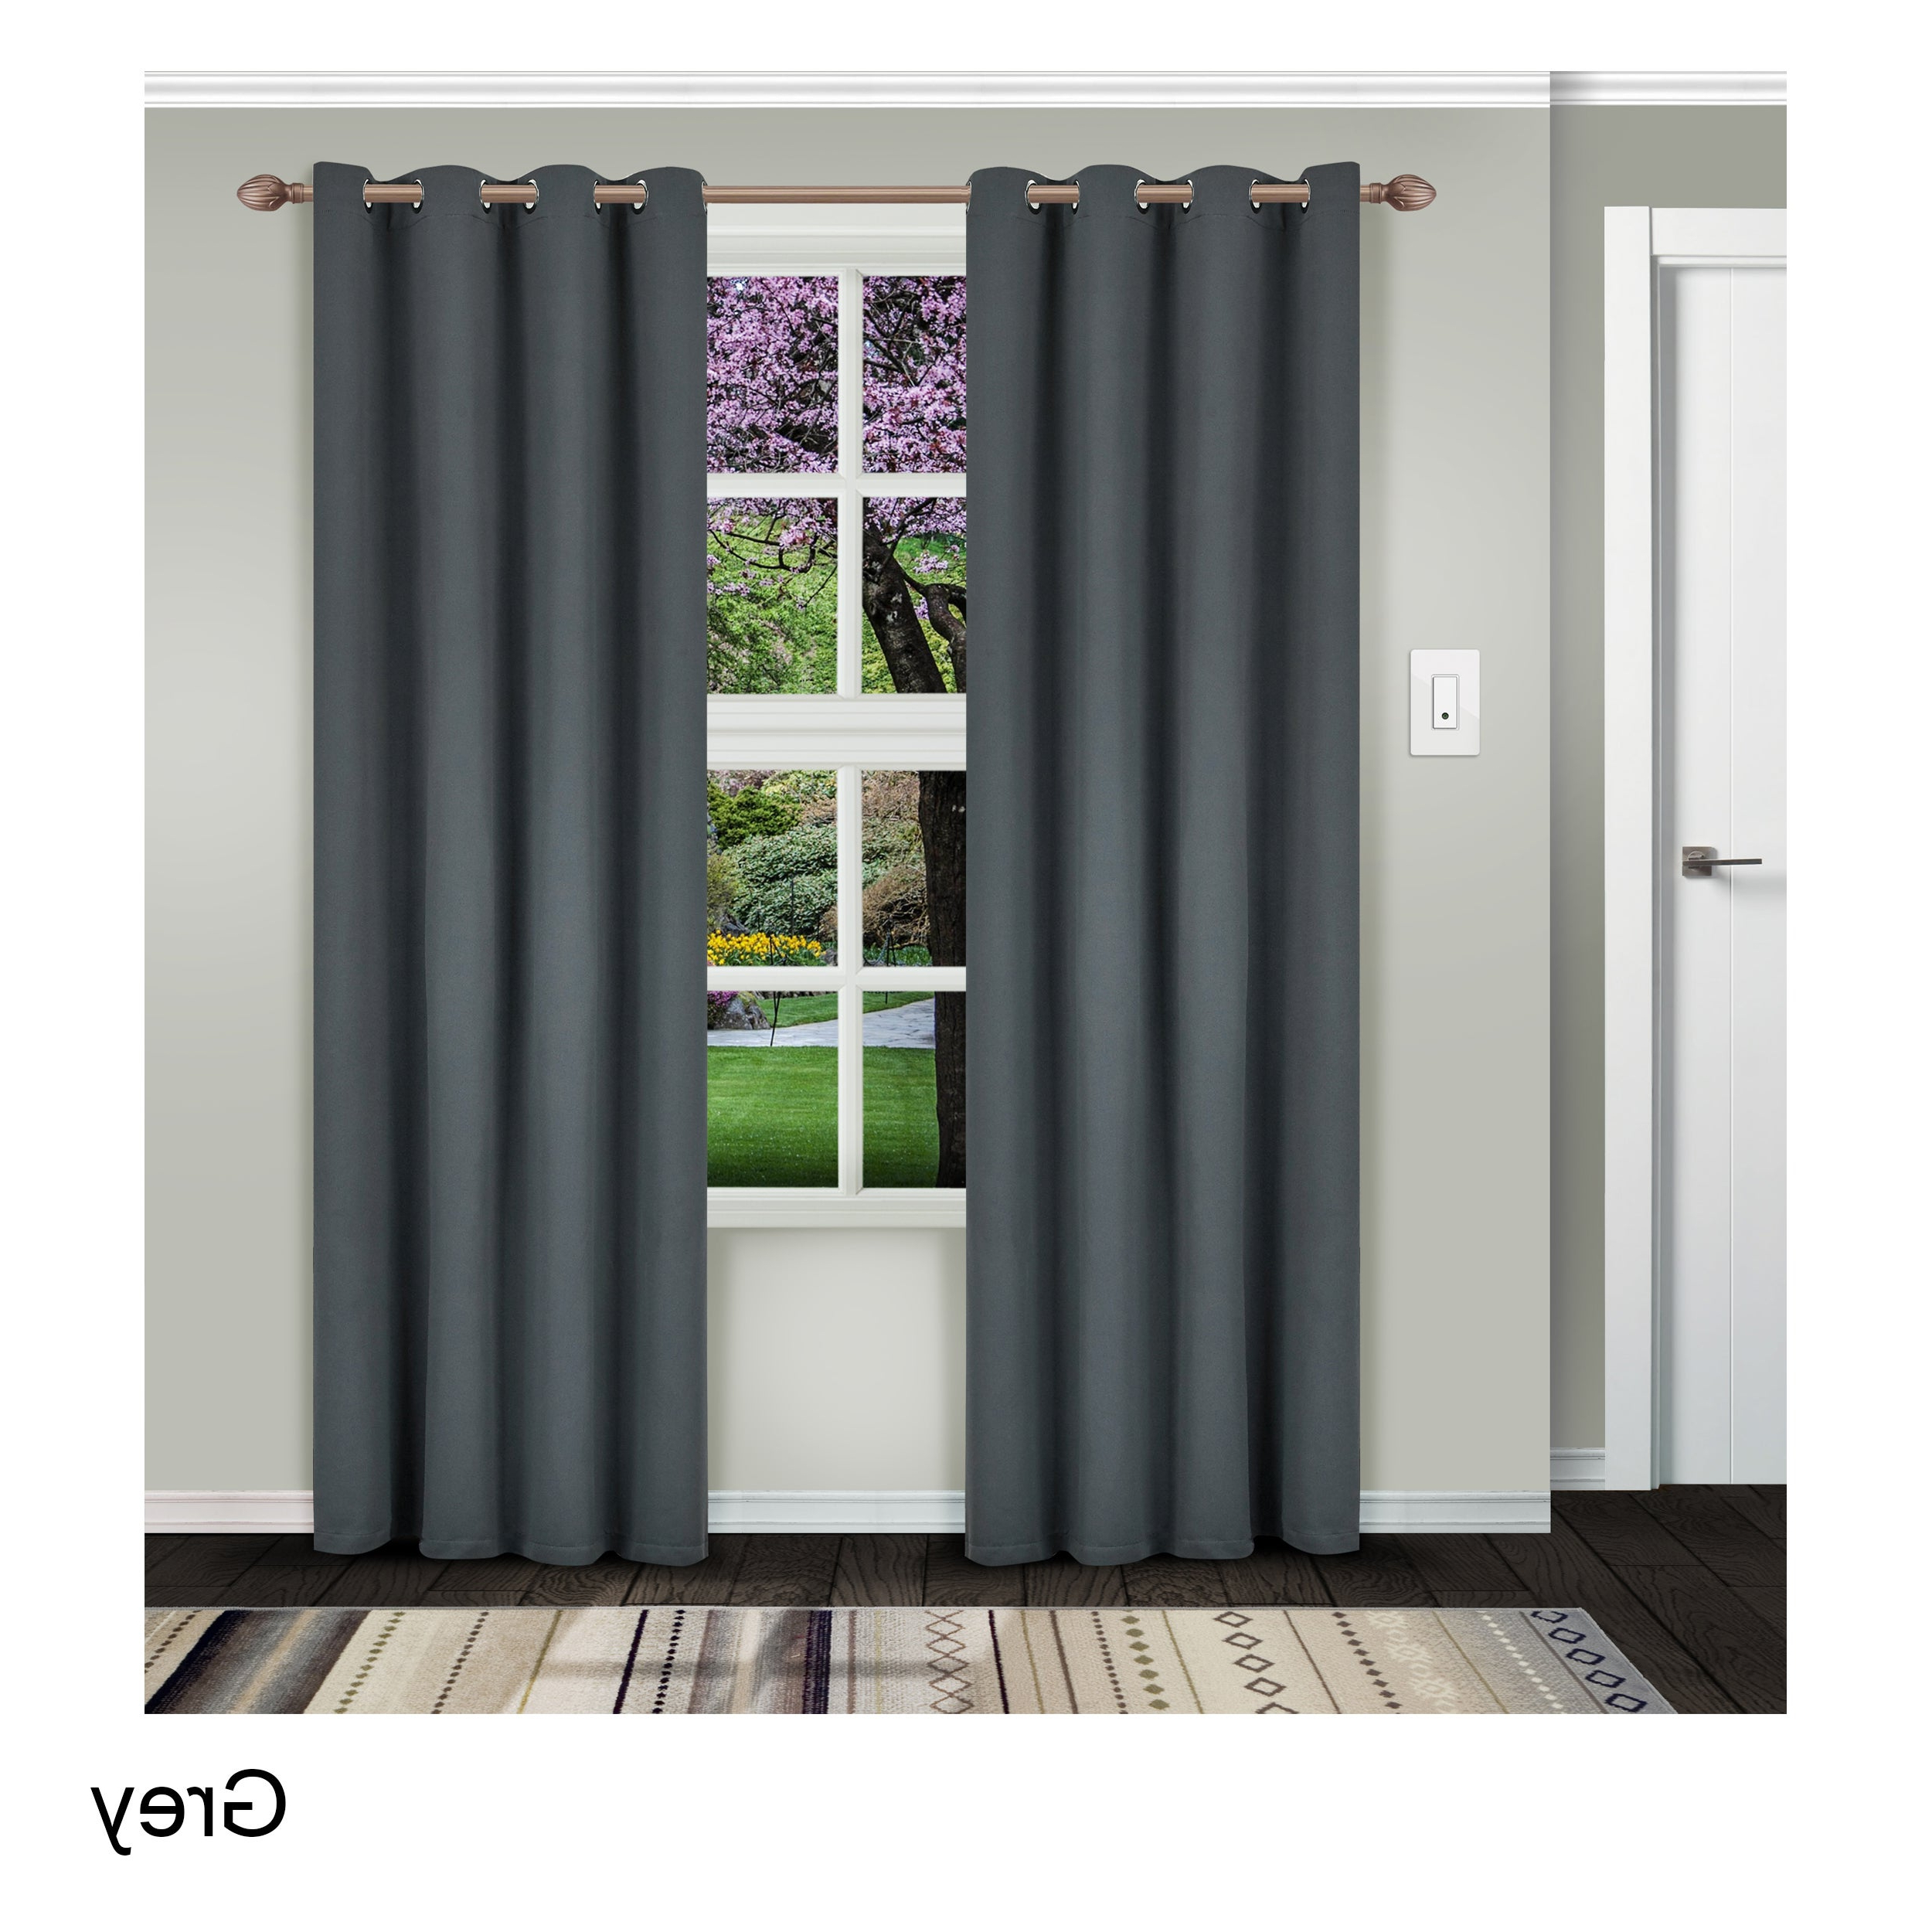 Superior Solid Insulated Thermal Blackout Grommet Curtain Panel Pair Inside 2021 Solid Thermal Insulated Blackout Curtain Panel Pairs (View 13 of 20)